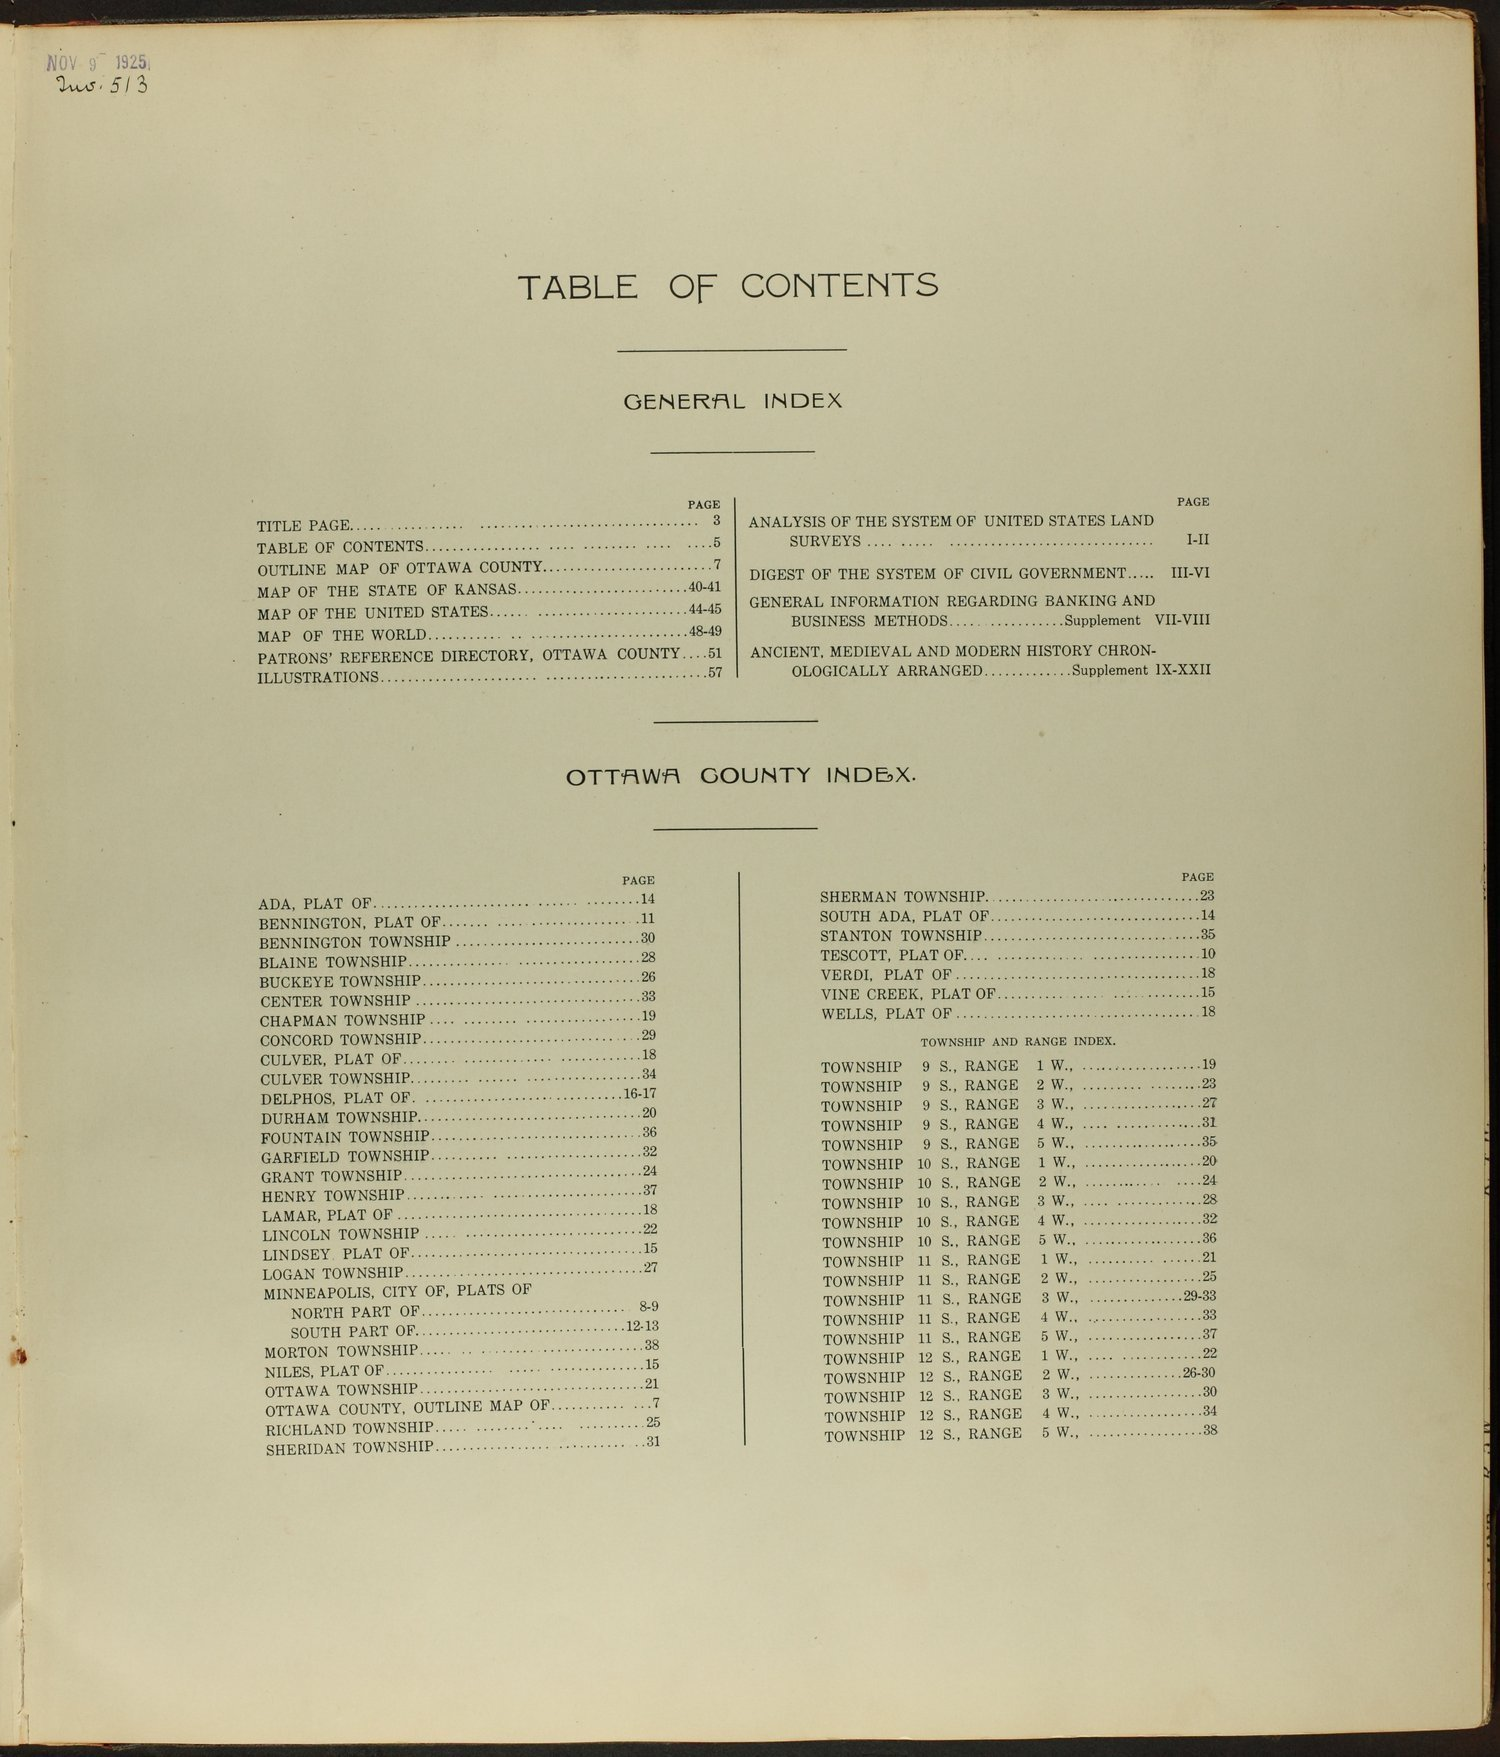 Standard atlas of Ottawa County, Kansas - Table of contents